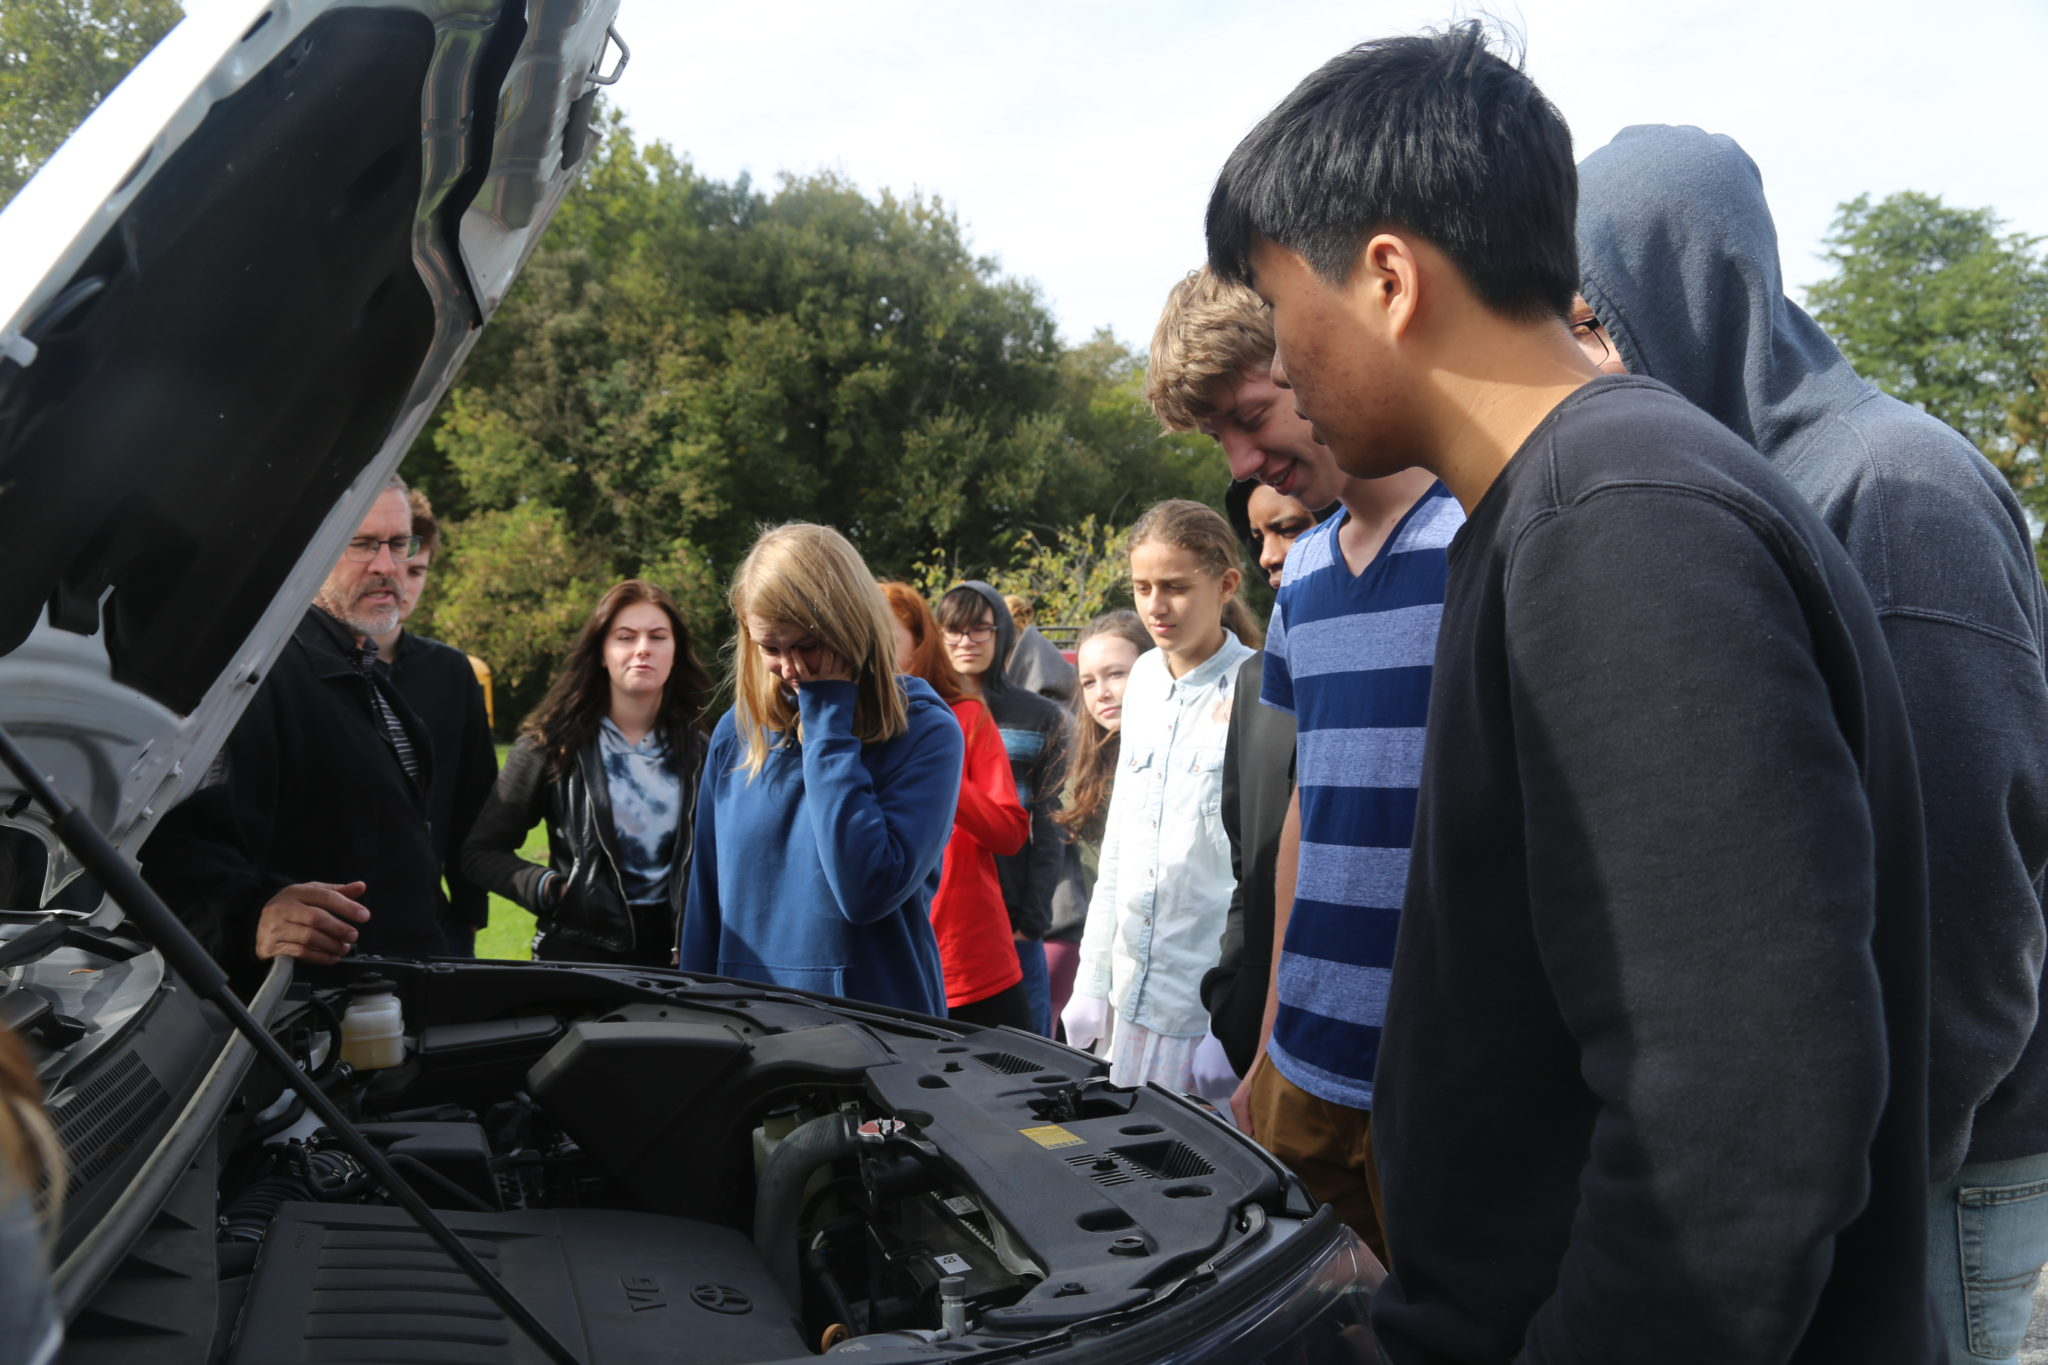 Students inspecting engine of a car